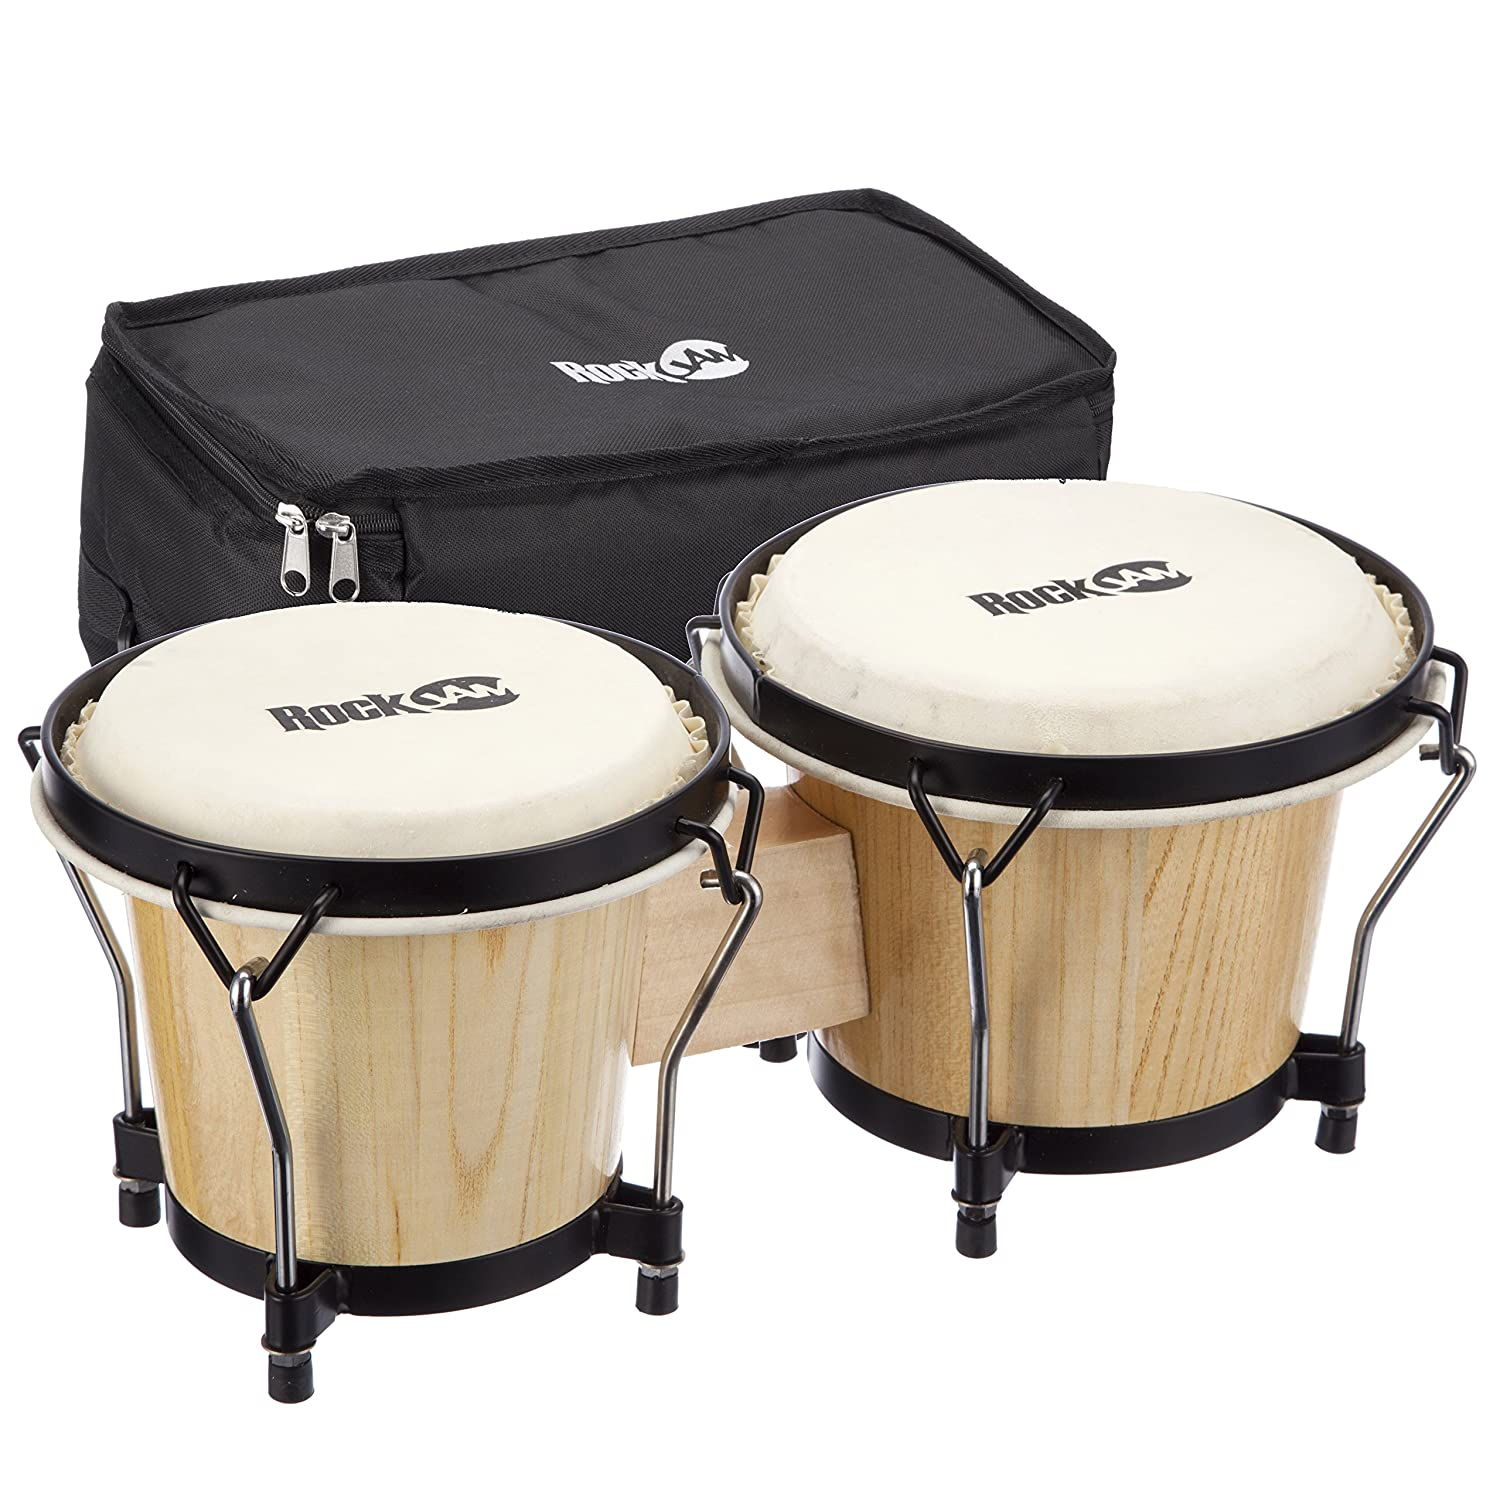 "RockJam 100300 7"" & 8"" Bongo Drum Set with Padded Bag, Natural PDT Ltd - IMPORT (UK Vendor Product FOB China)"